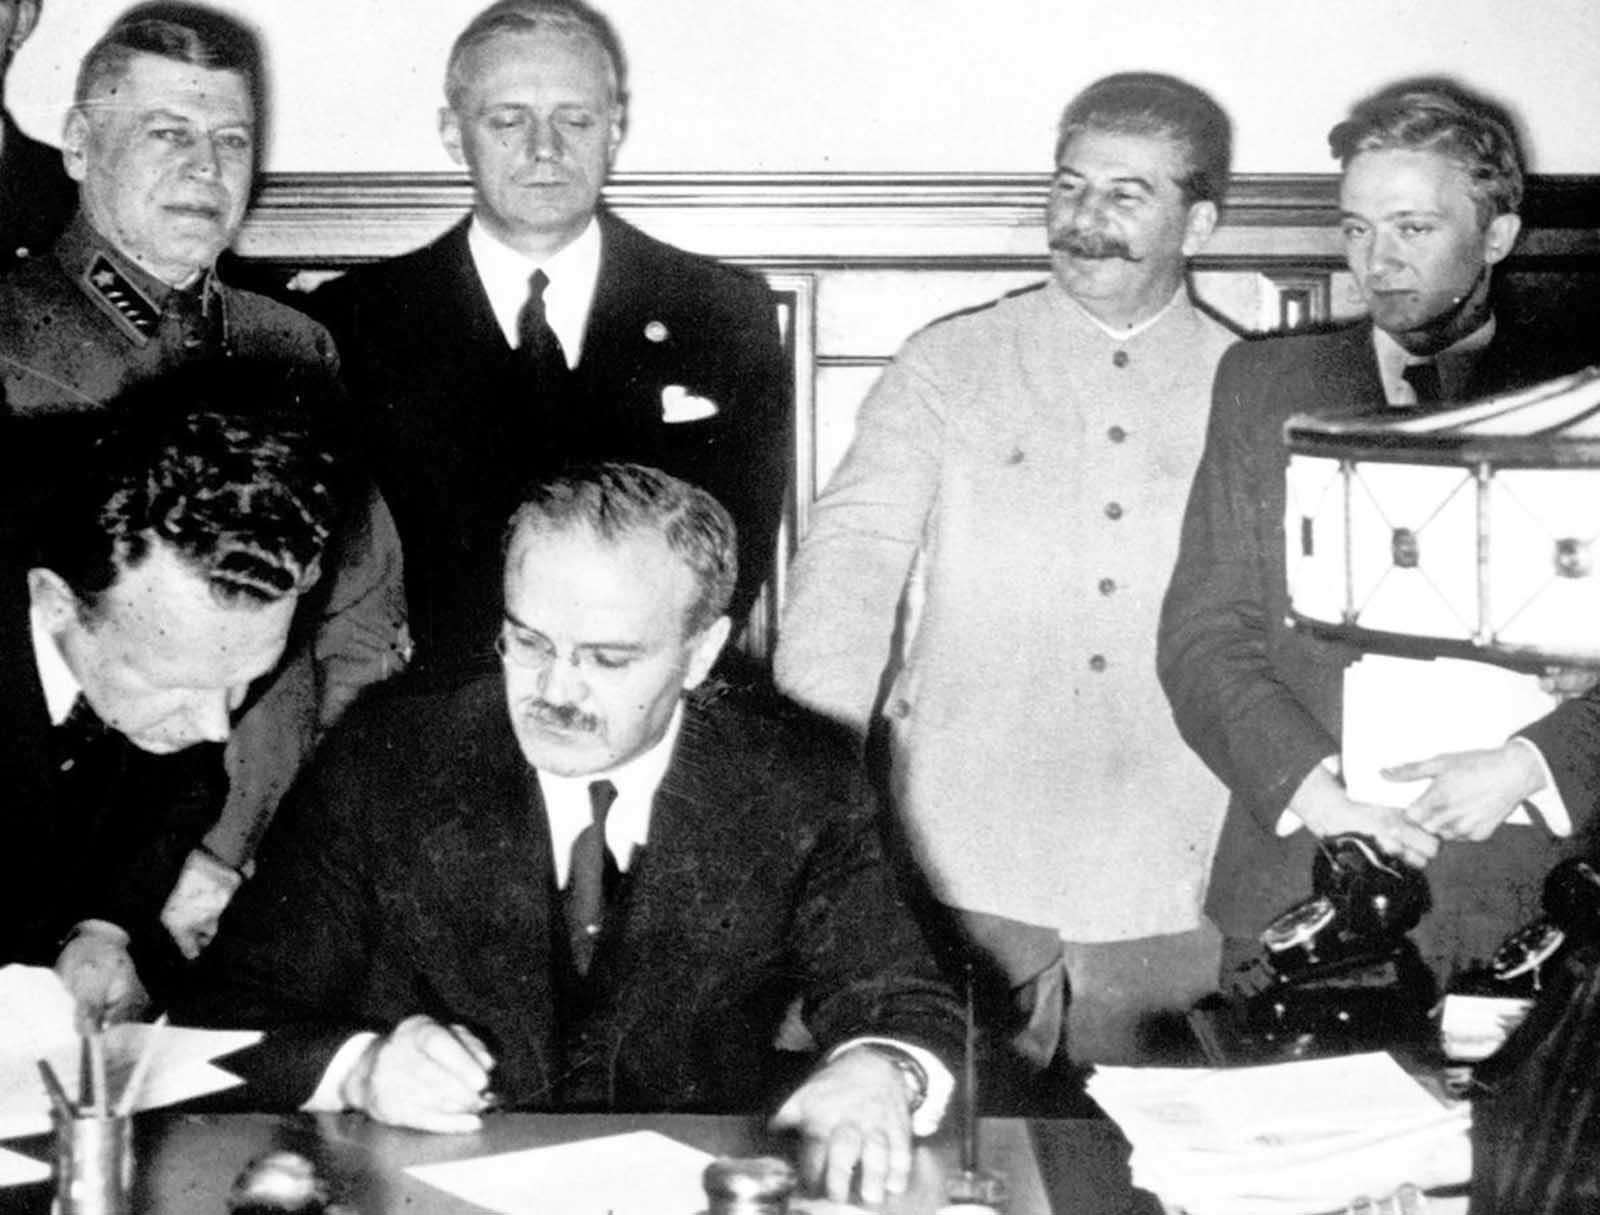 Soviet premier Josef Stalin (second from right), smiles while Soviet Foreign Minister Vyacheslav Molotov (seated), signs the non-aggression pact with German Reich Foreign Minister Joachim von Ribbentrop (third from right), in Moscow, on August 23, 1939. The man at left is Soviet Deputy Defense Minister and Chief of the General Staff, Marshal Boris Shaposhnikov. The nonaggression pact included a secret protocol dividing eastern Europe into spheres of influence in the event of a conflict. The pact now guaranteed that Hitler's troops would face no resistance from the Soviets if they invaded Poland, bringing the war one step closer to reality.